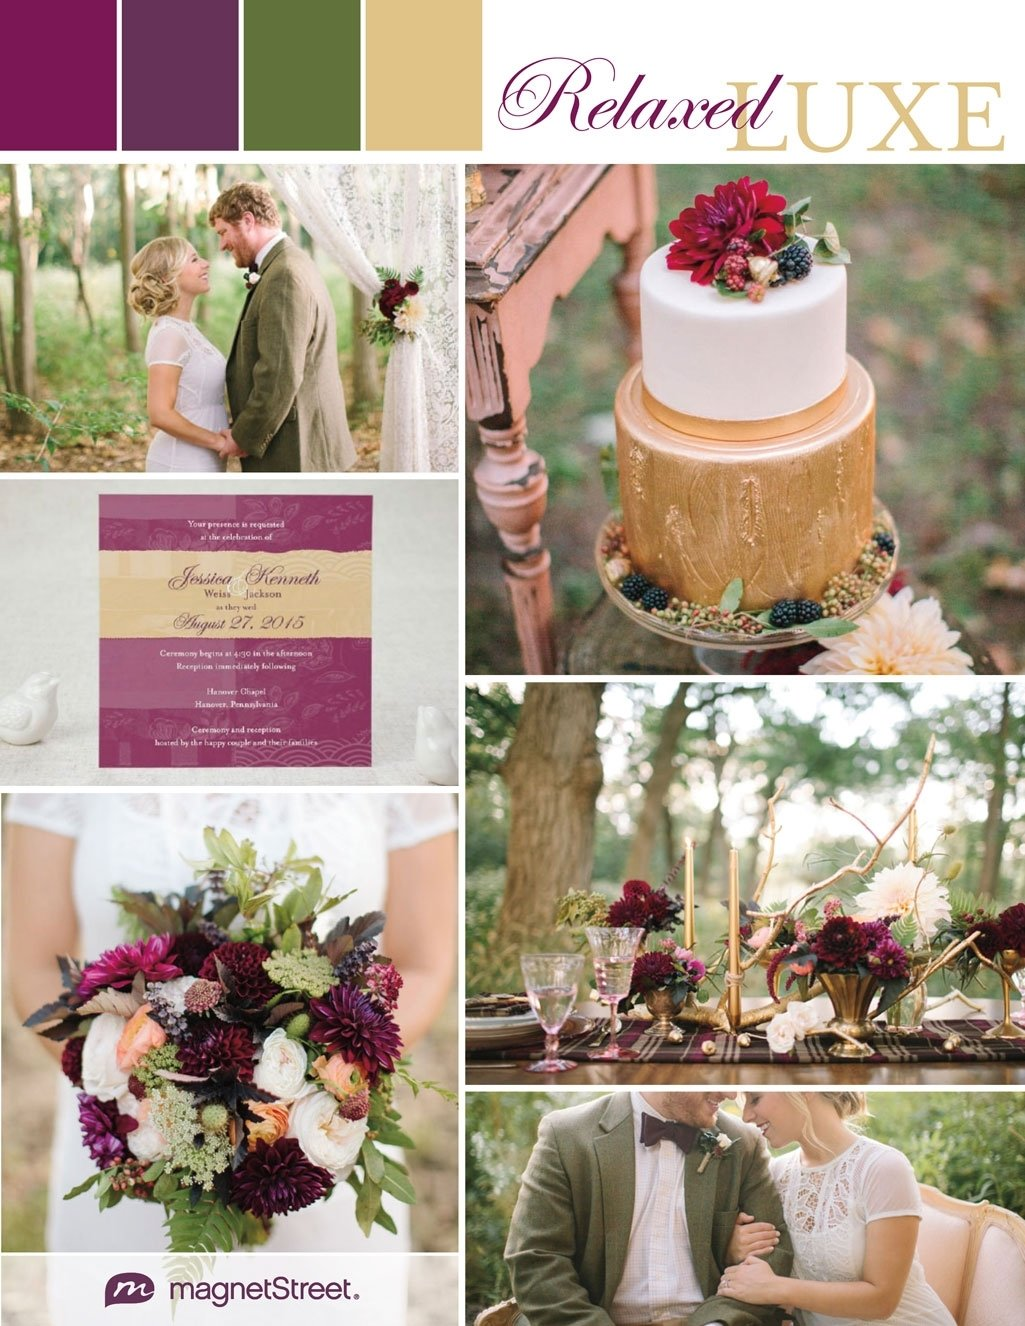 10 Awesome Purple And Green Wedding Ideas regal and rustic wedding ideasregal and rustic wedding ideas 1 2021